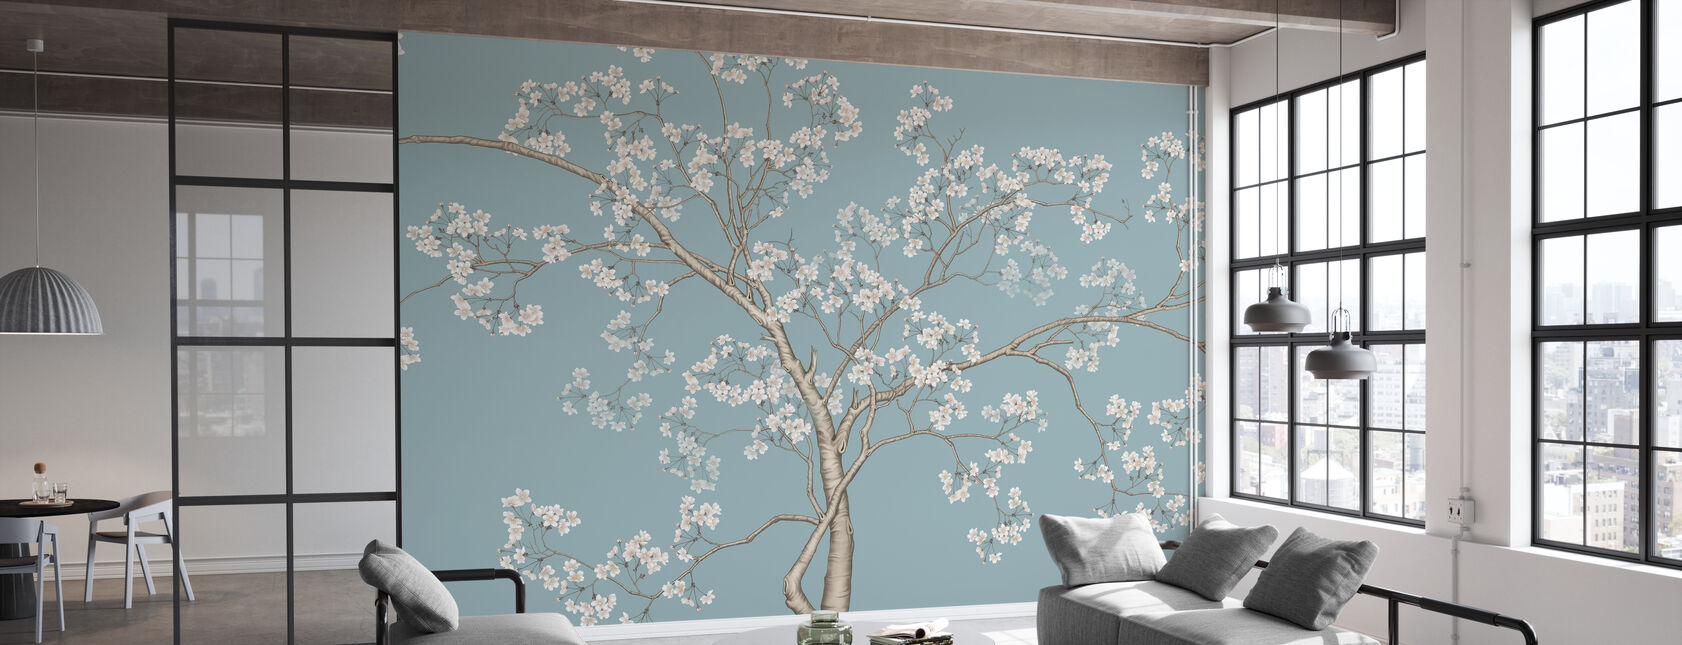 The Tree - Bluefin - Wallpaper - Office